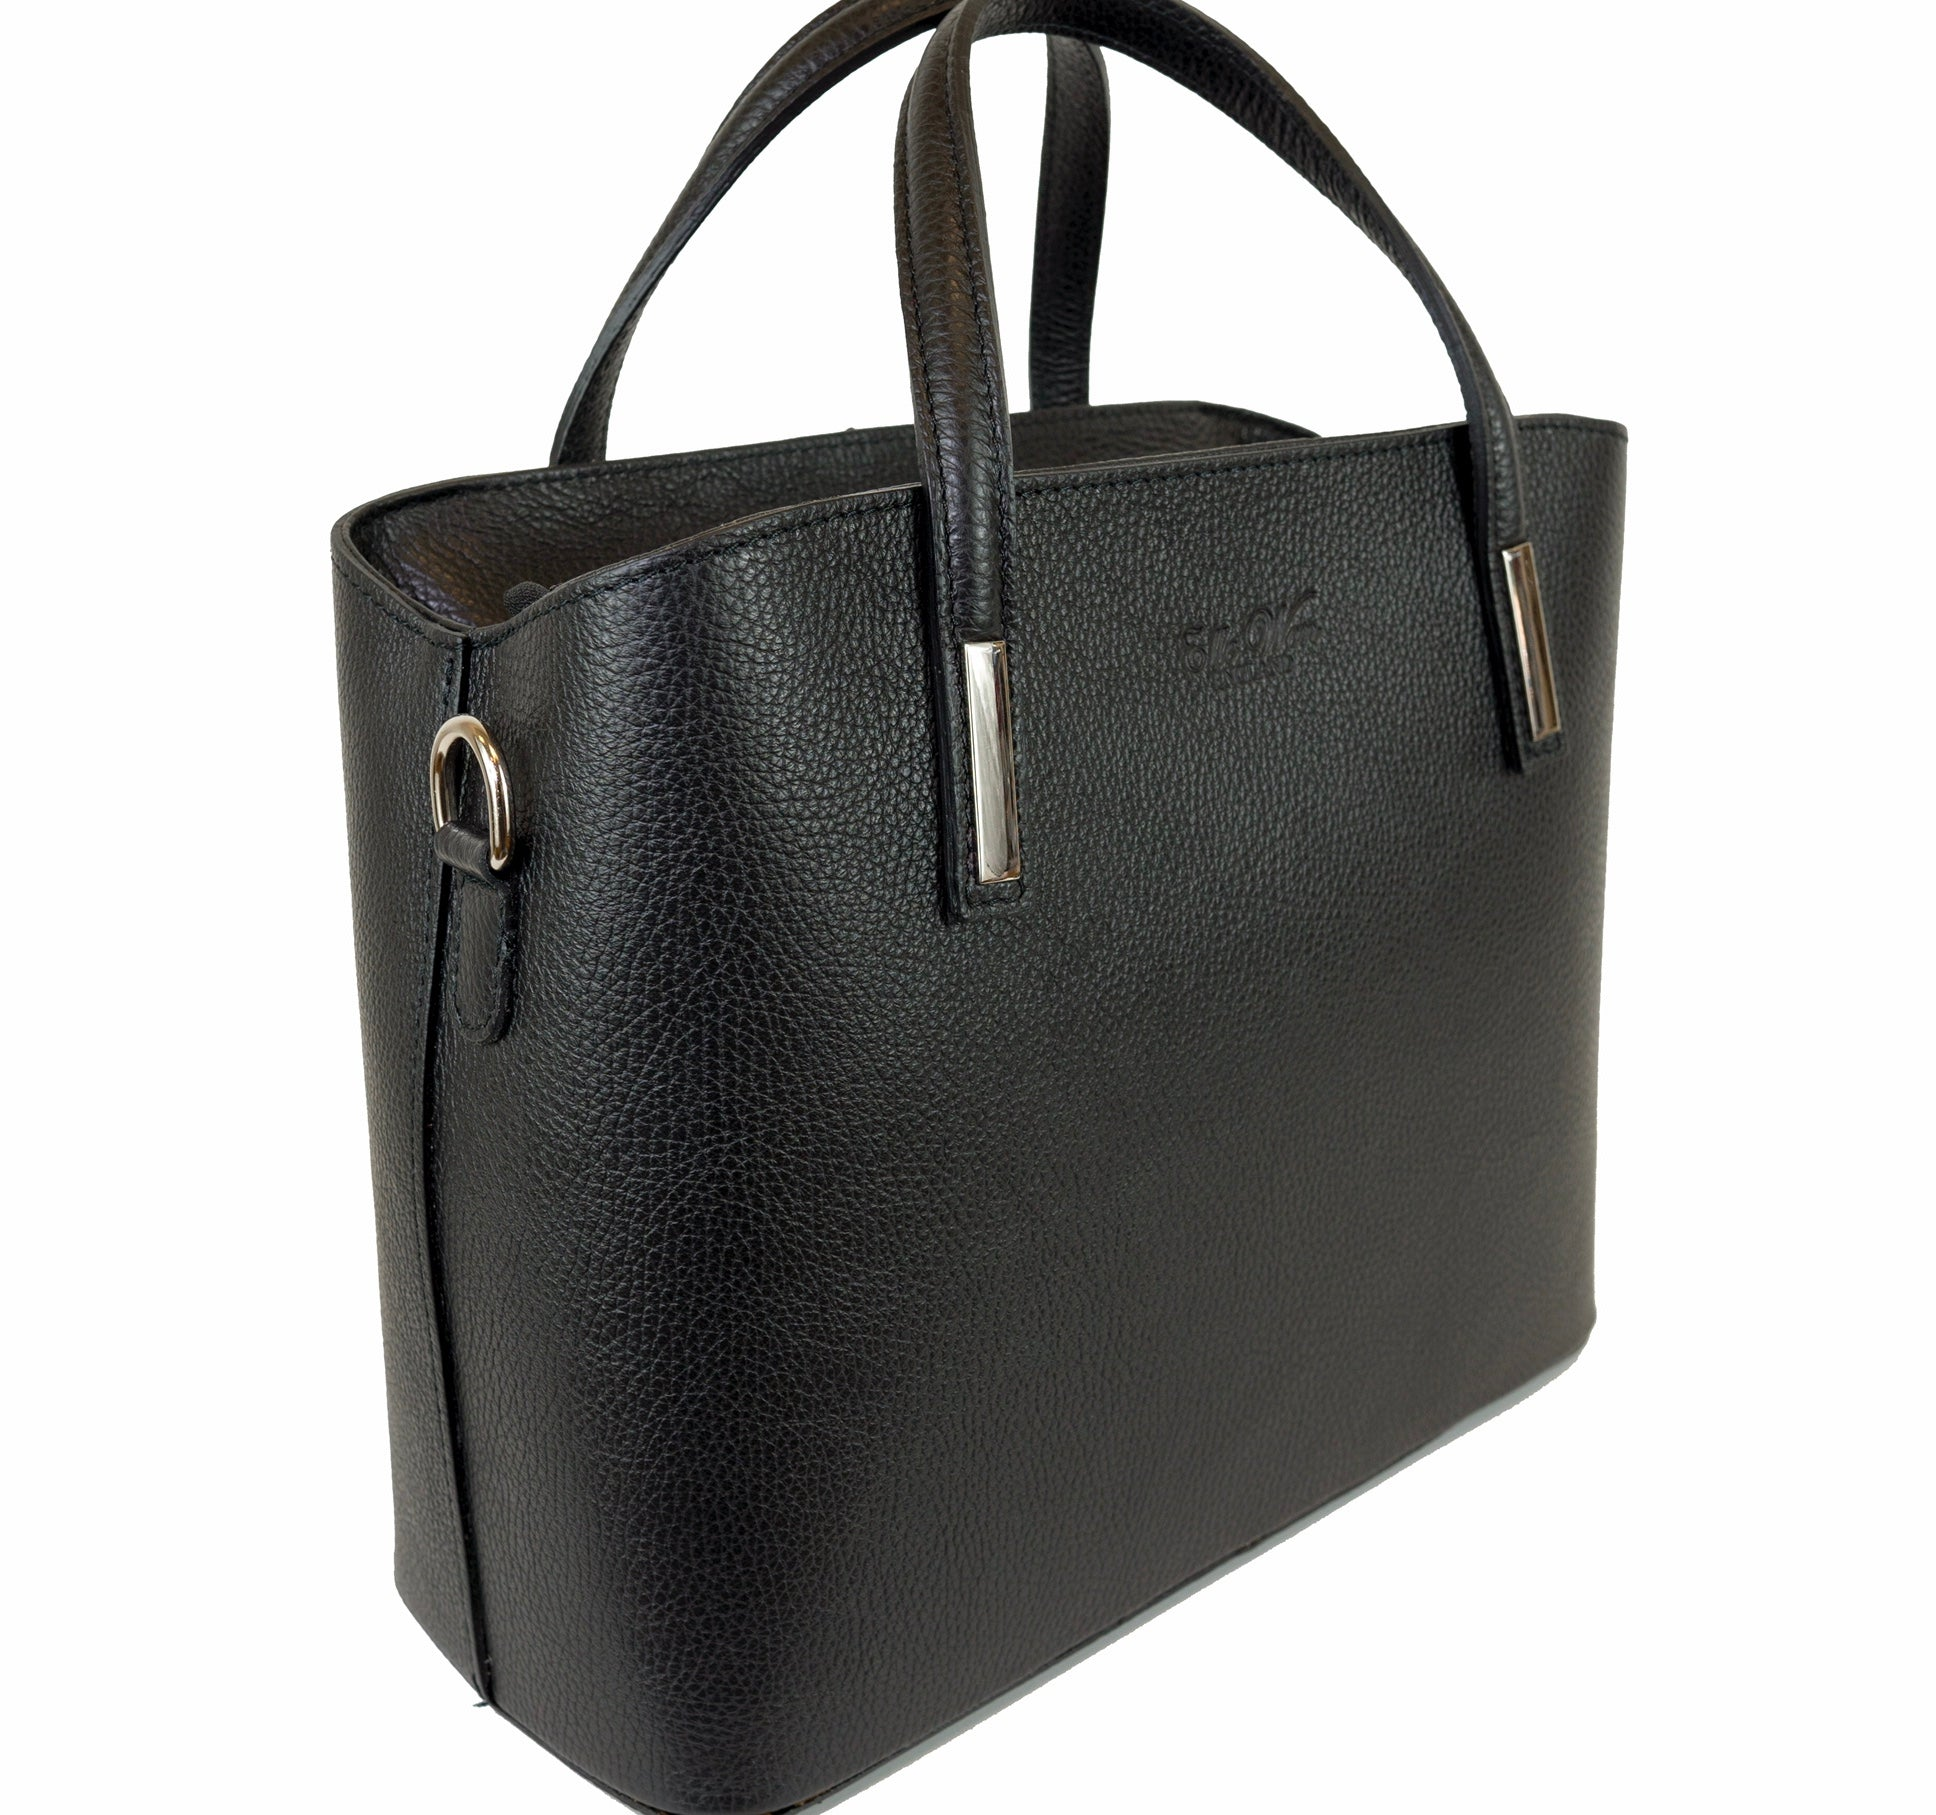 Veronica (Black) - Satchel handbag